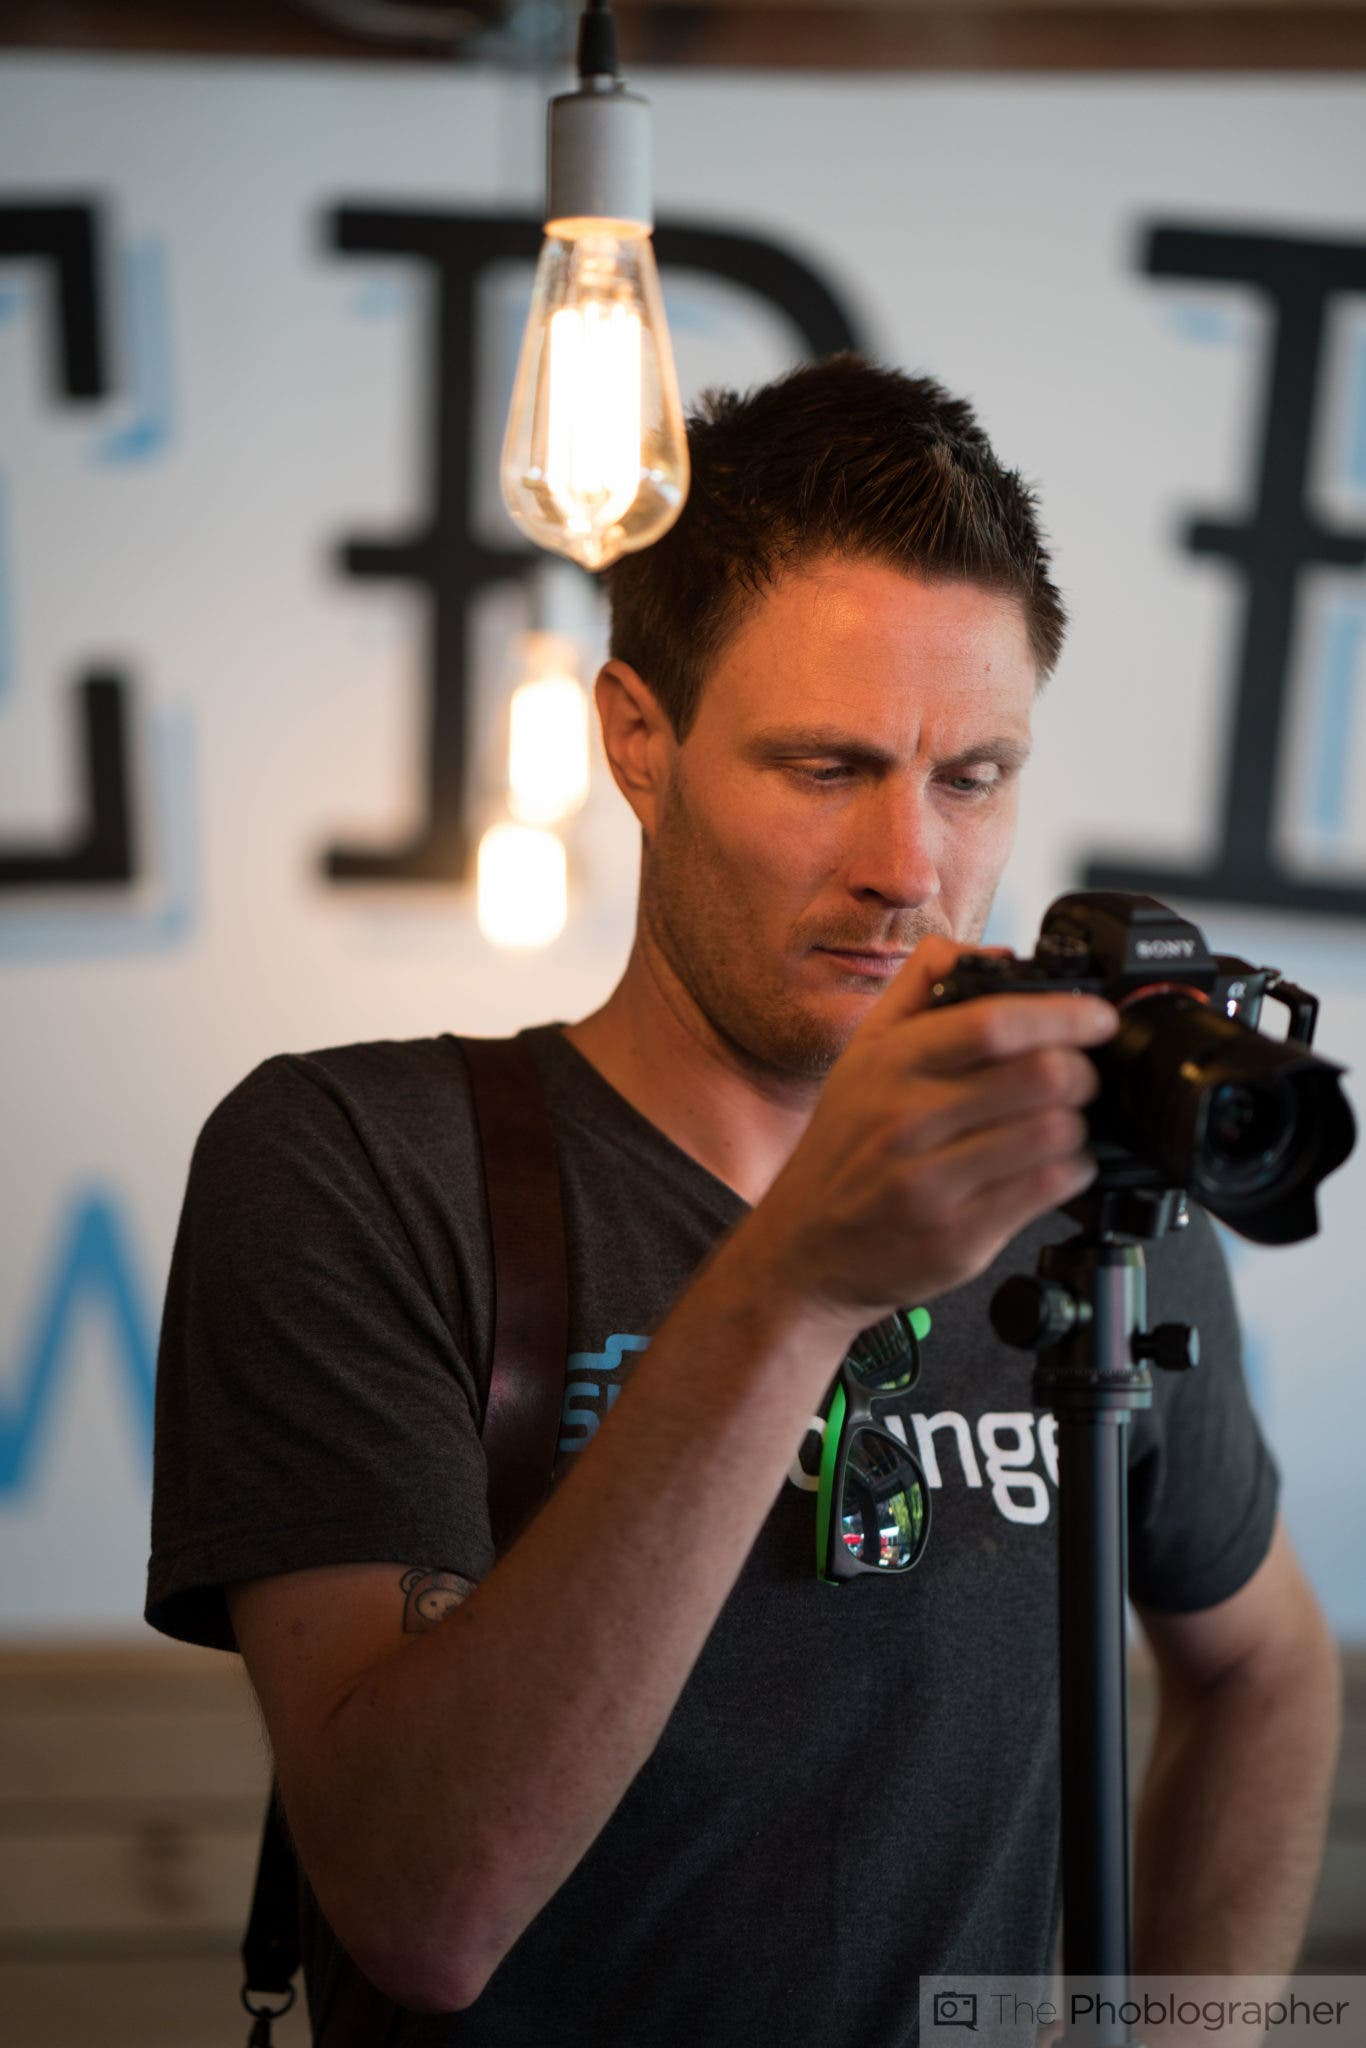 Chris Gampat The Phoblographer Zeiss 85mm f1.8 Batis lens review image samples (10 of 11)ISO 4001-160 sec at f - 1.8